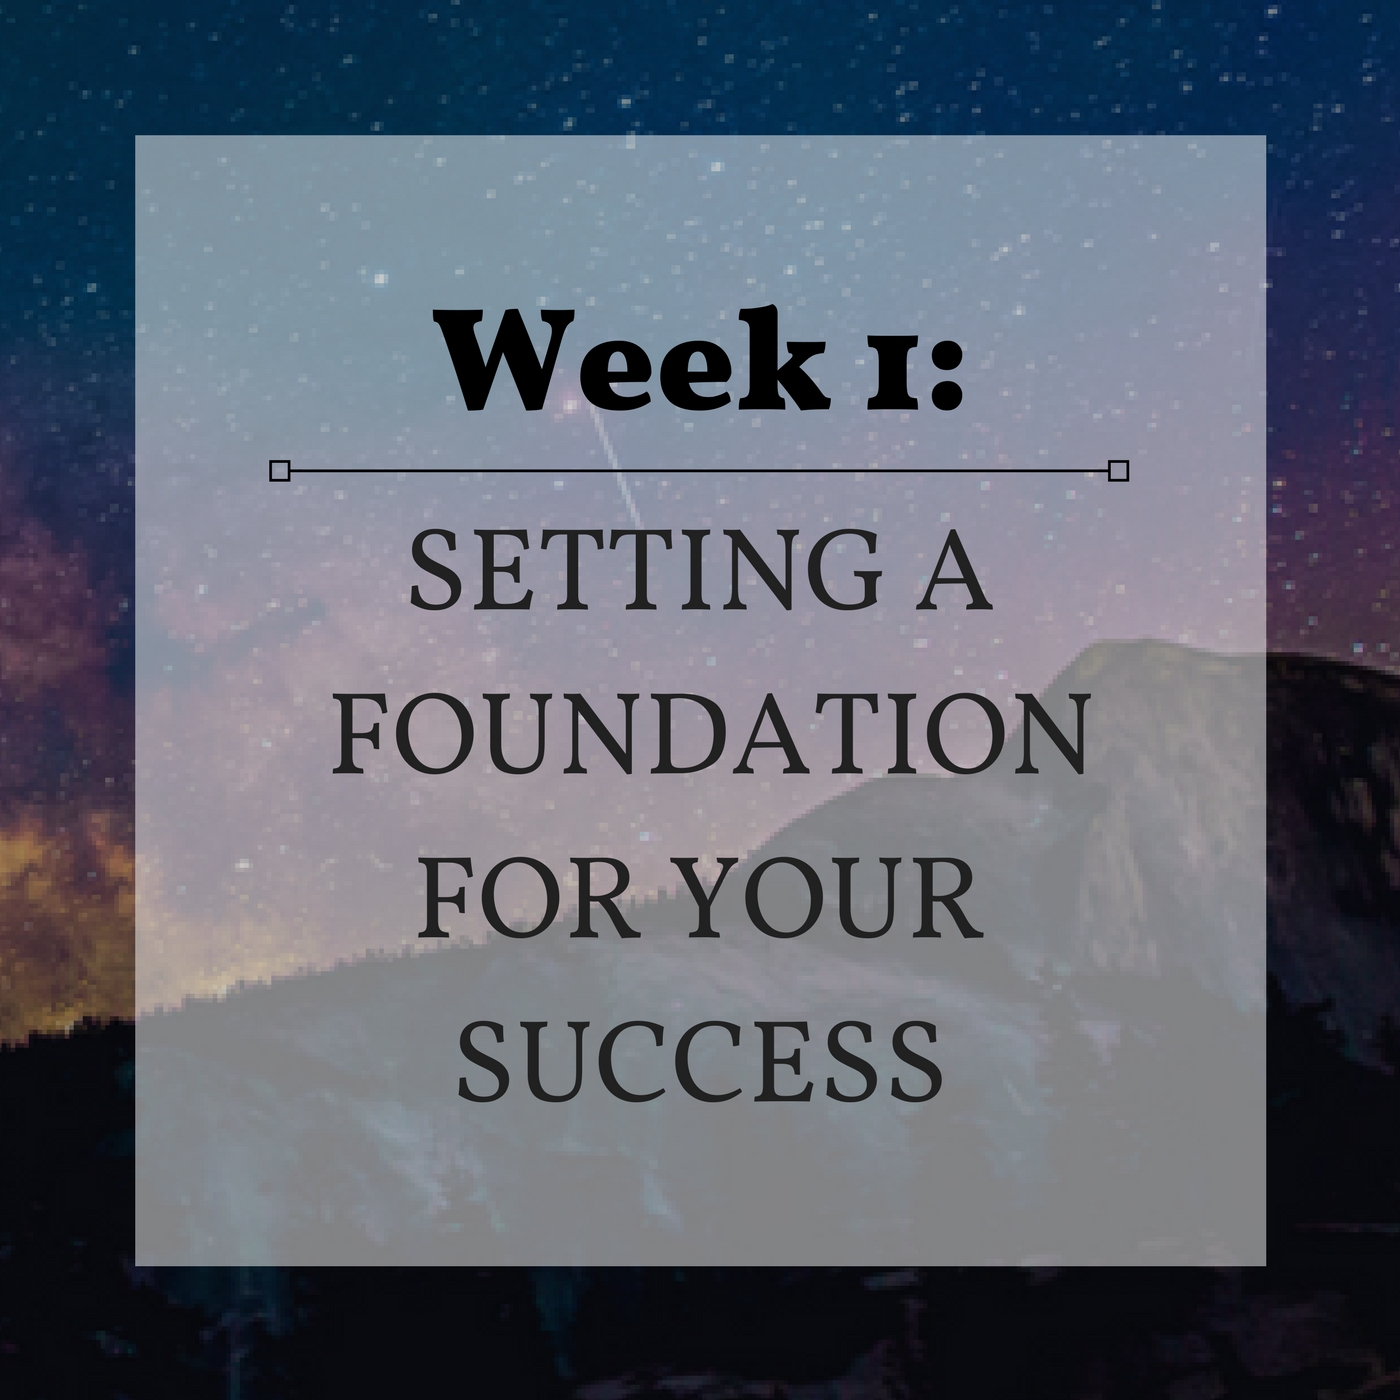 Week 1 Setting a Foundation for Your Success